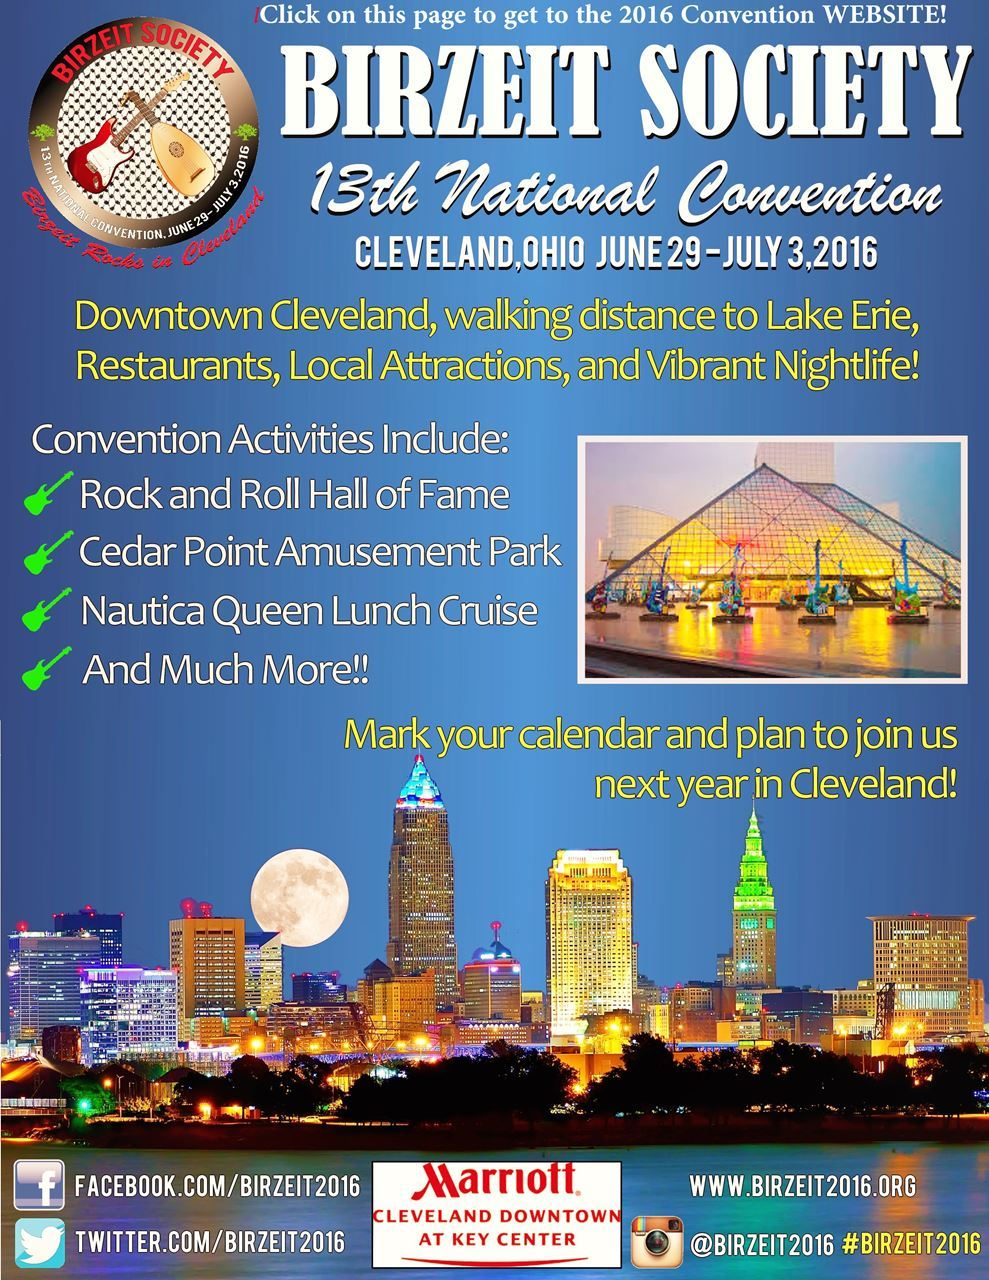 Click on this flyer to get to the 2016 convention website!